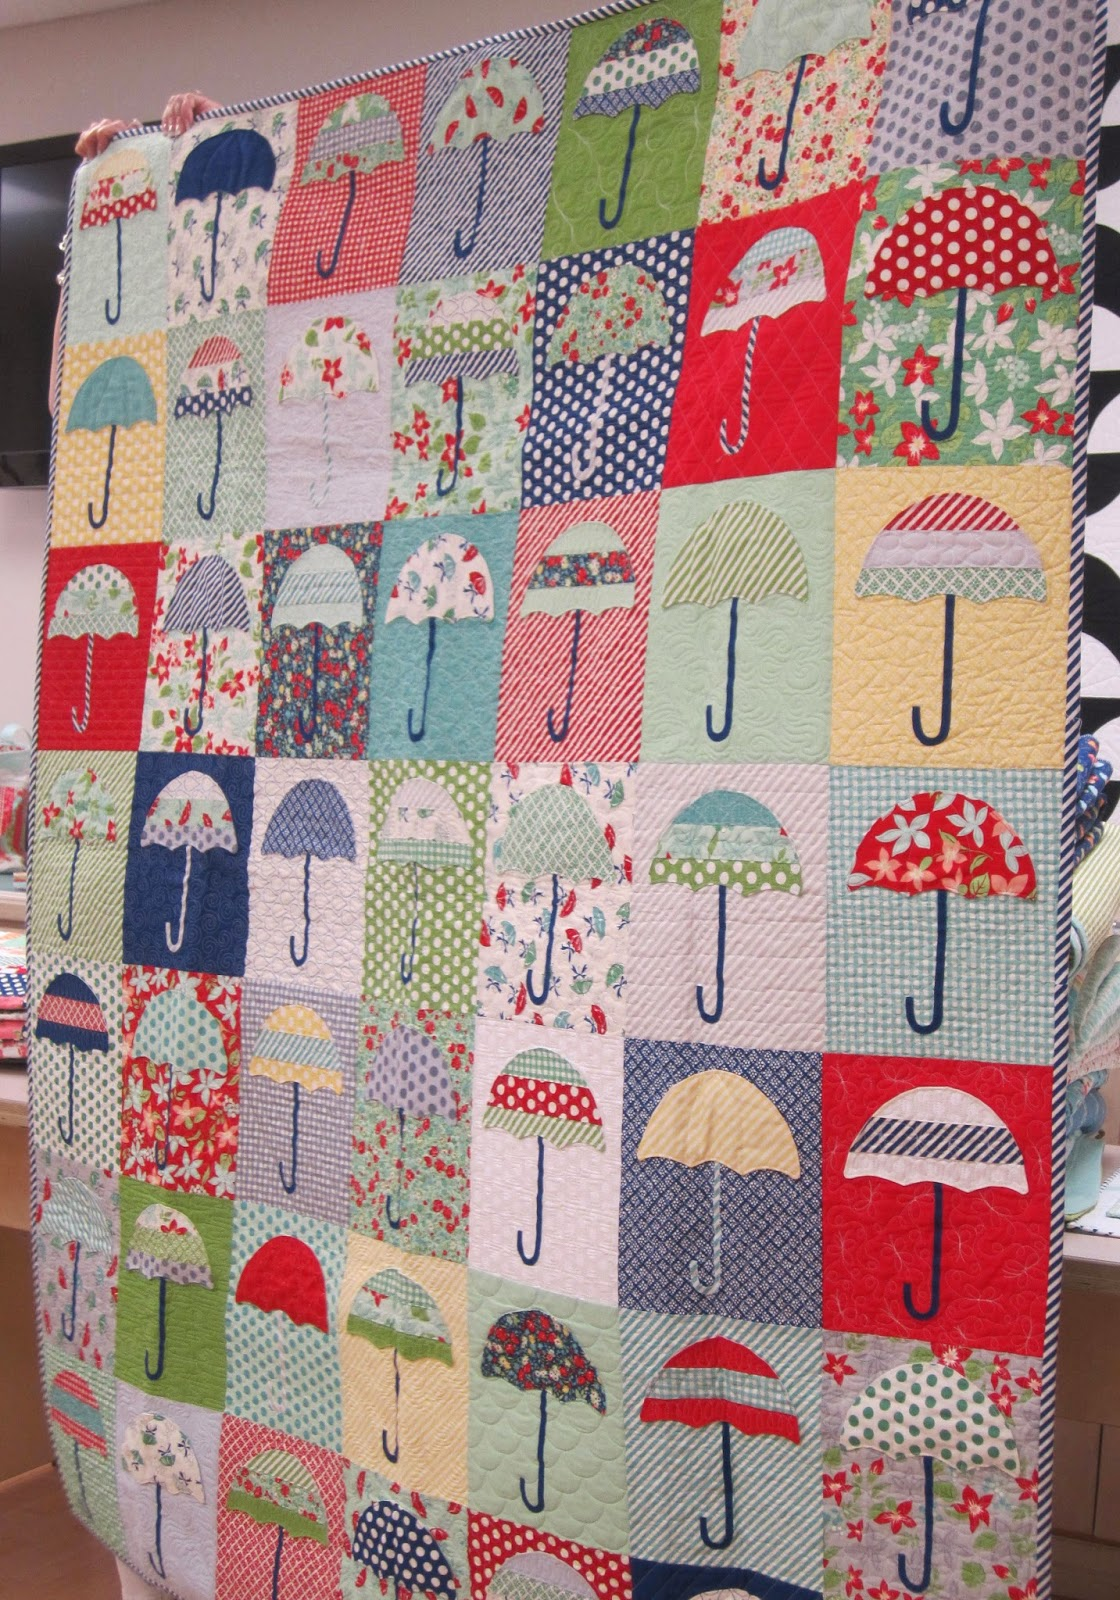 camille roskelley's raincheck quilt, april showers